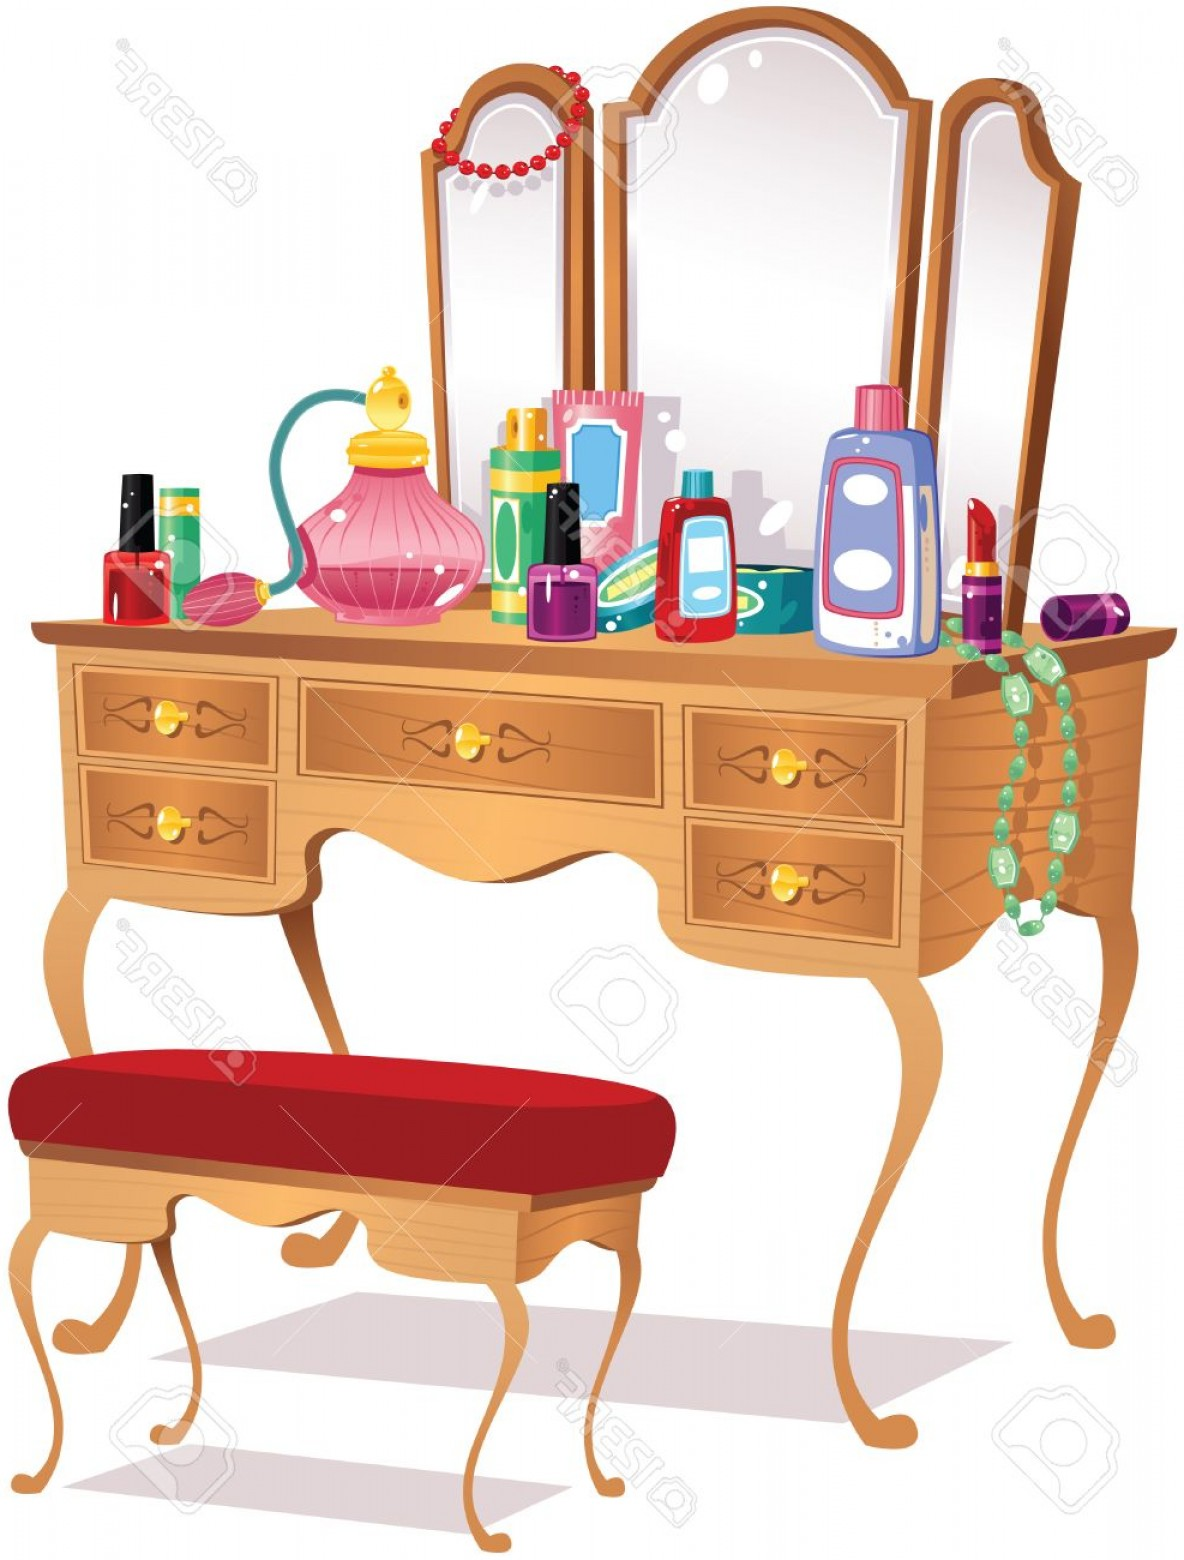 Vector Makeup Vanity Table: Photostock Vector An Illustration Of An Old Fashioned Wooden Vanity Dressing Table